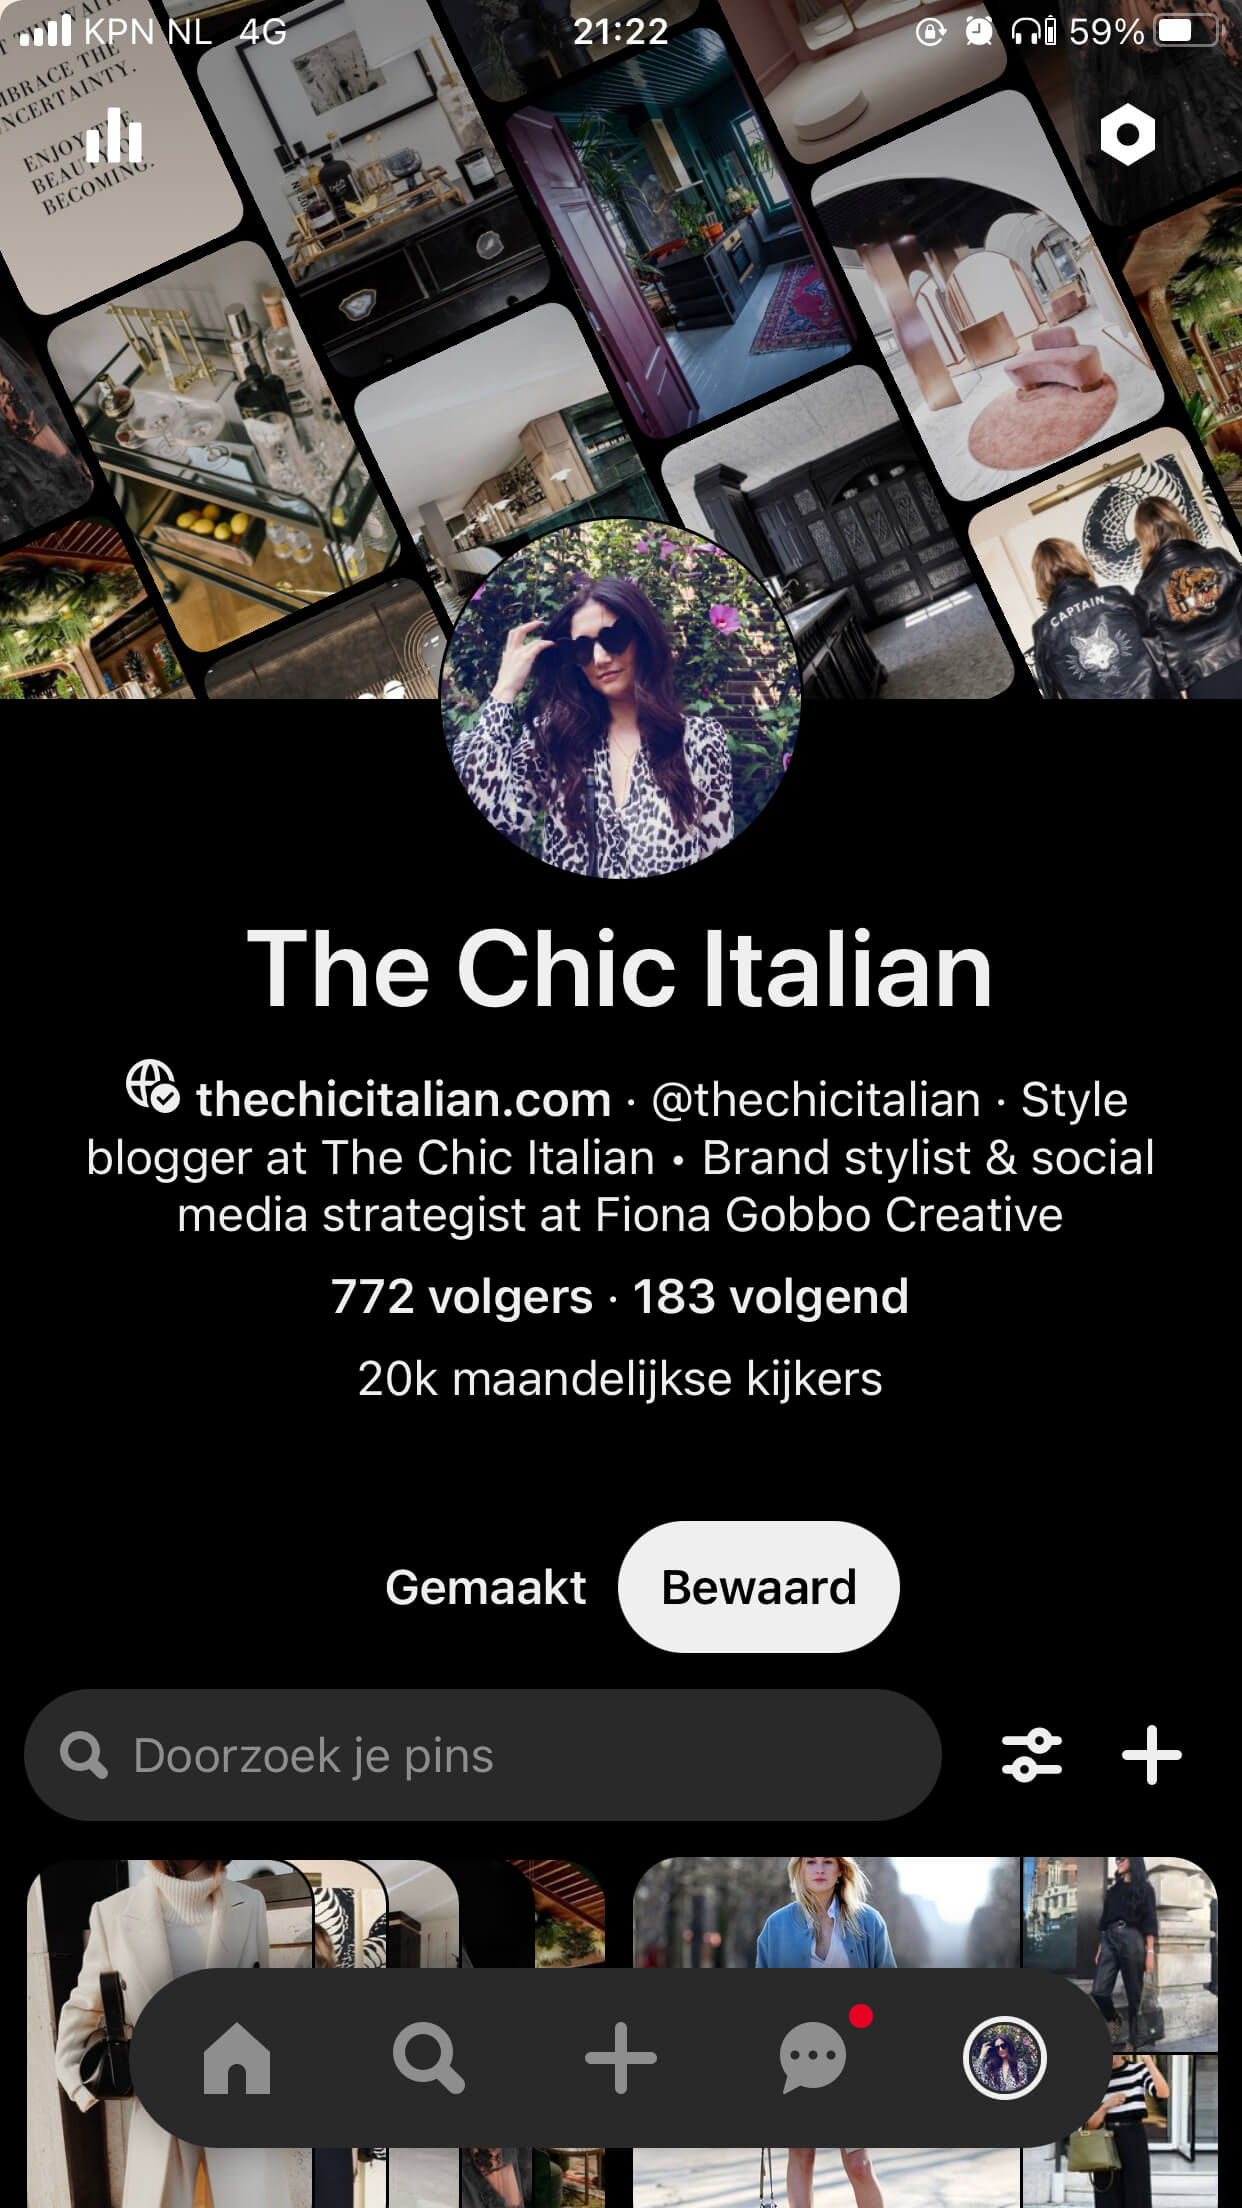 Blog Content Strategy and Content Creation for The Chic Italian | Fiona Gobbo Creative | Social media strategy for Pinterest